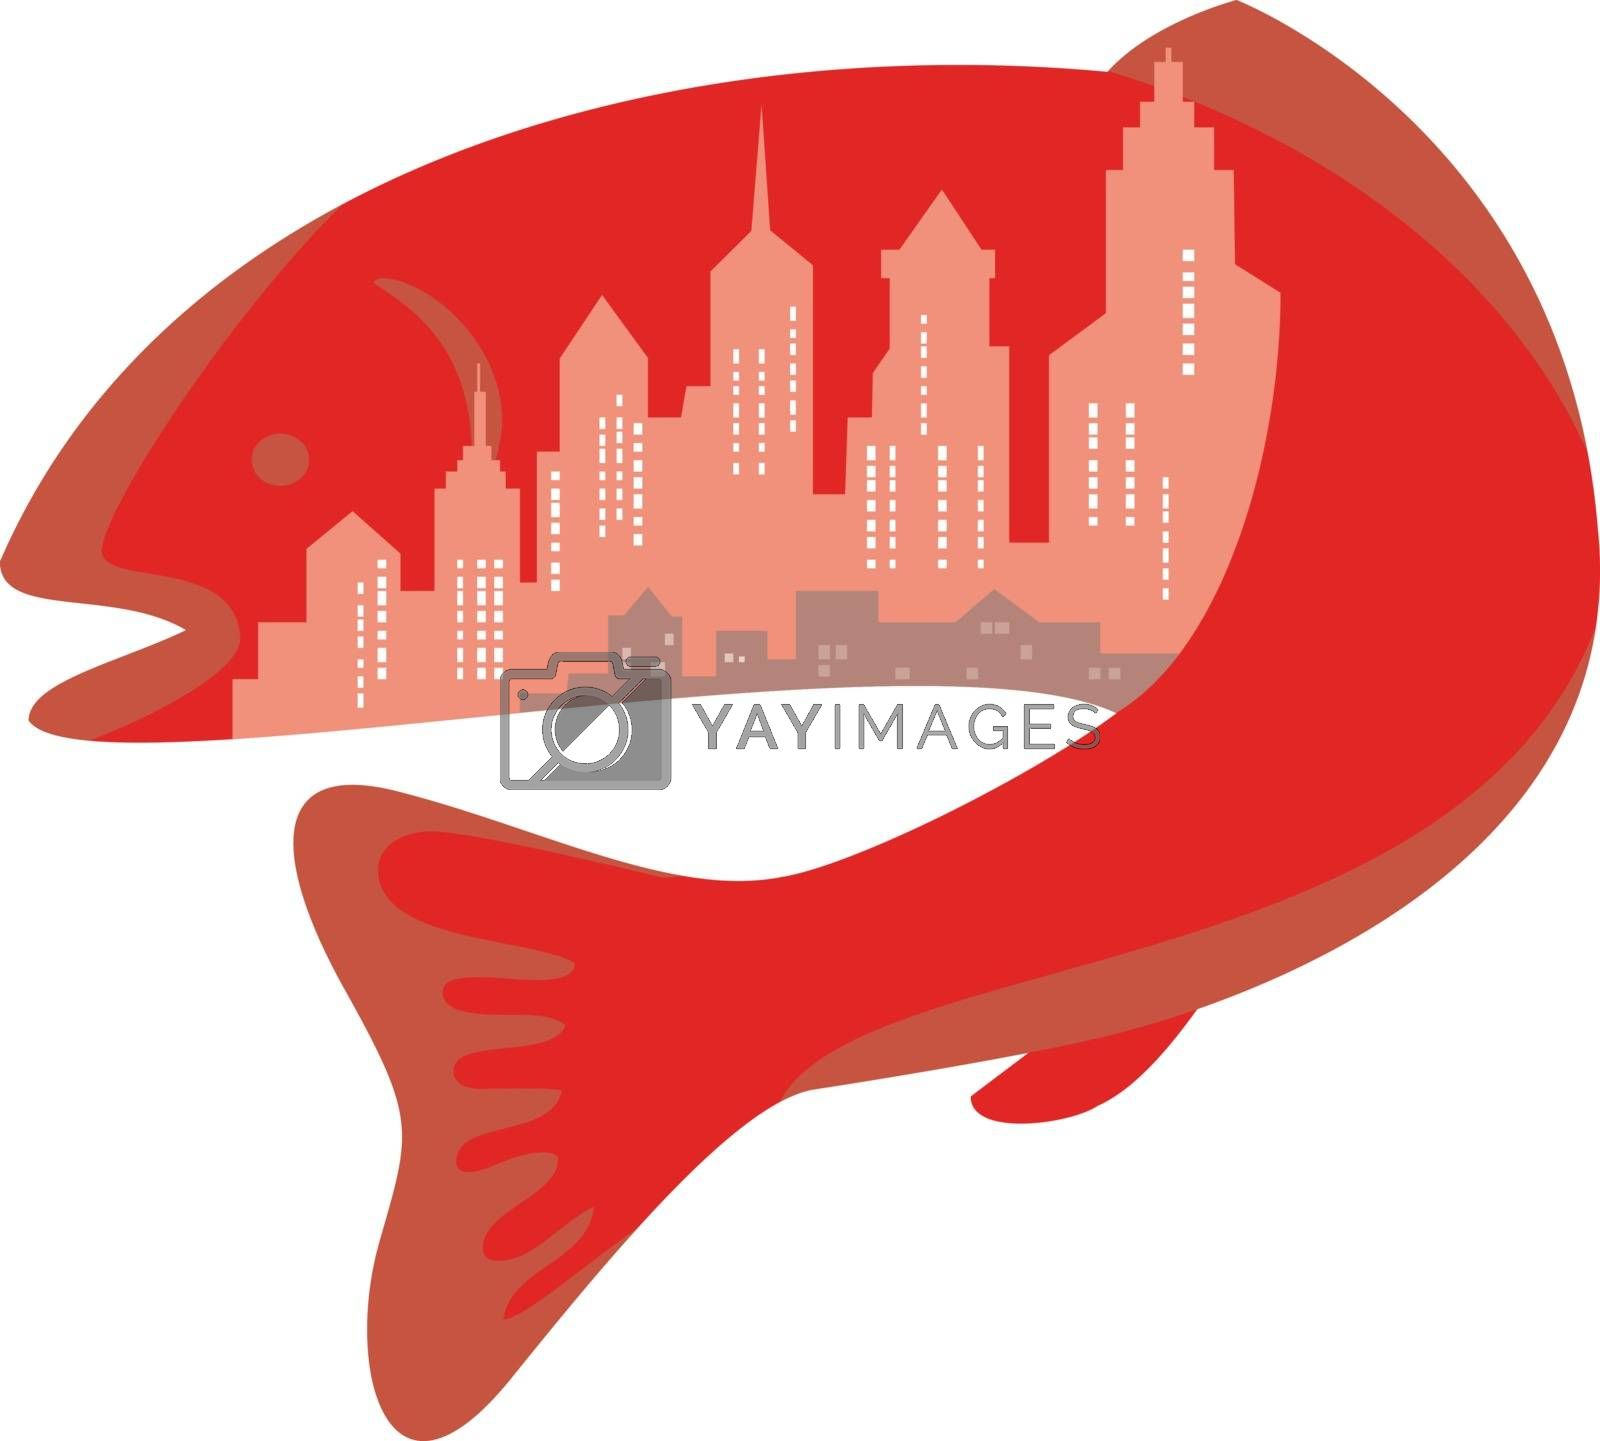 Icon retro style illustration of trout or salmon fish with urban or city skyline buildings inside on isolated background.